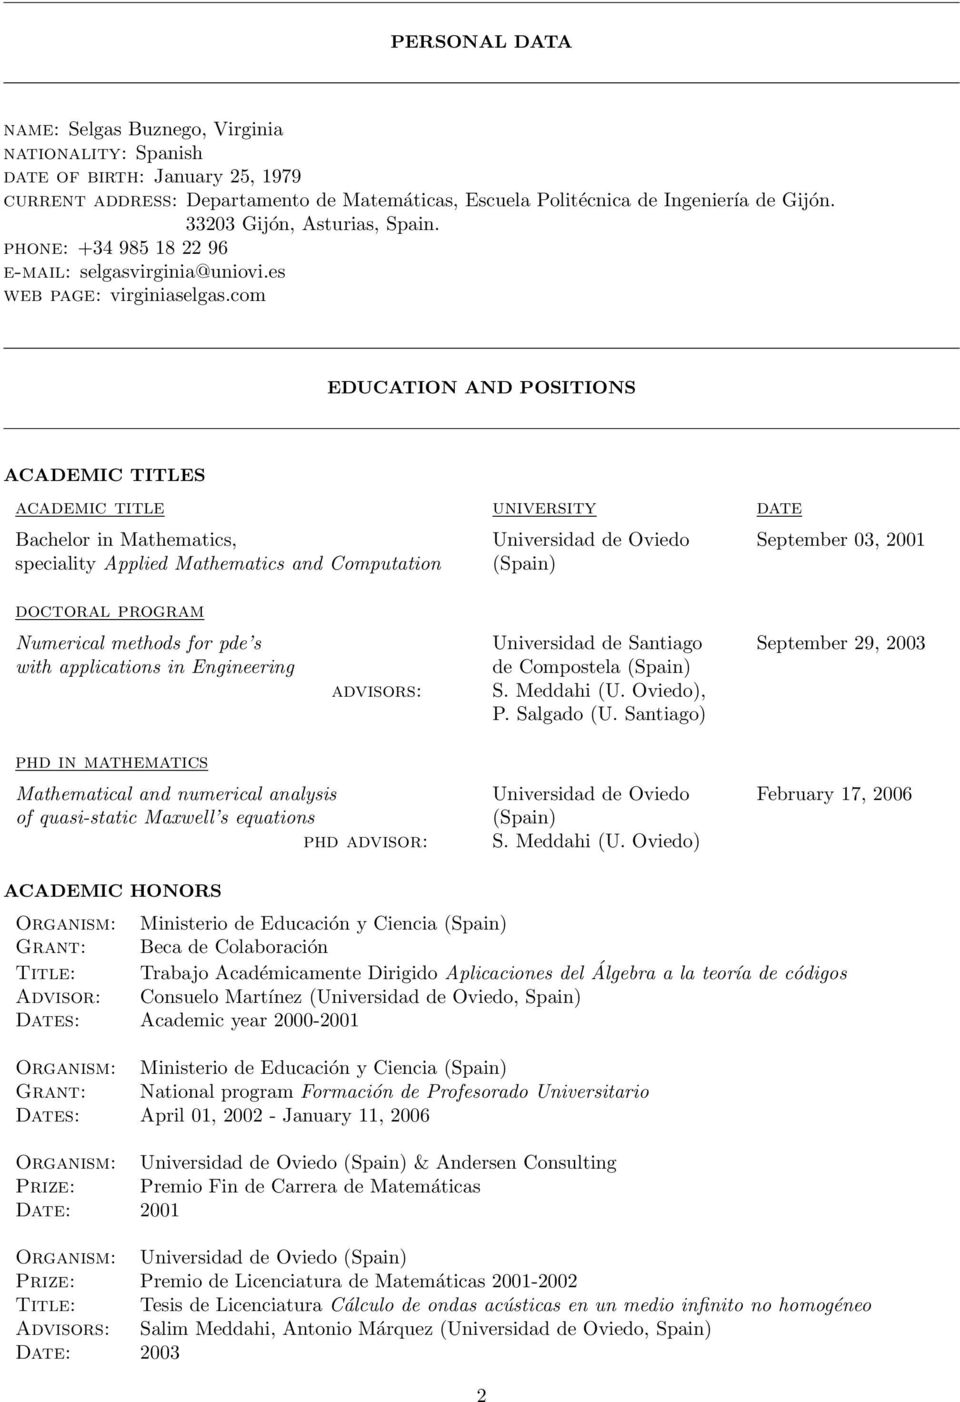 Curriculum Vitae and Scientific Activities. Virginia SELGAS - PDF